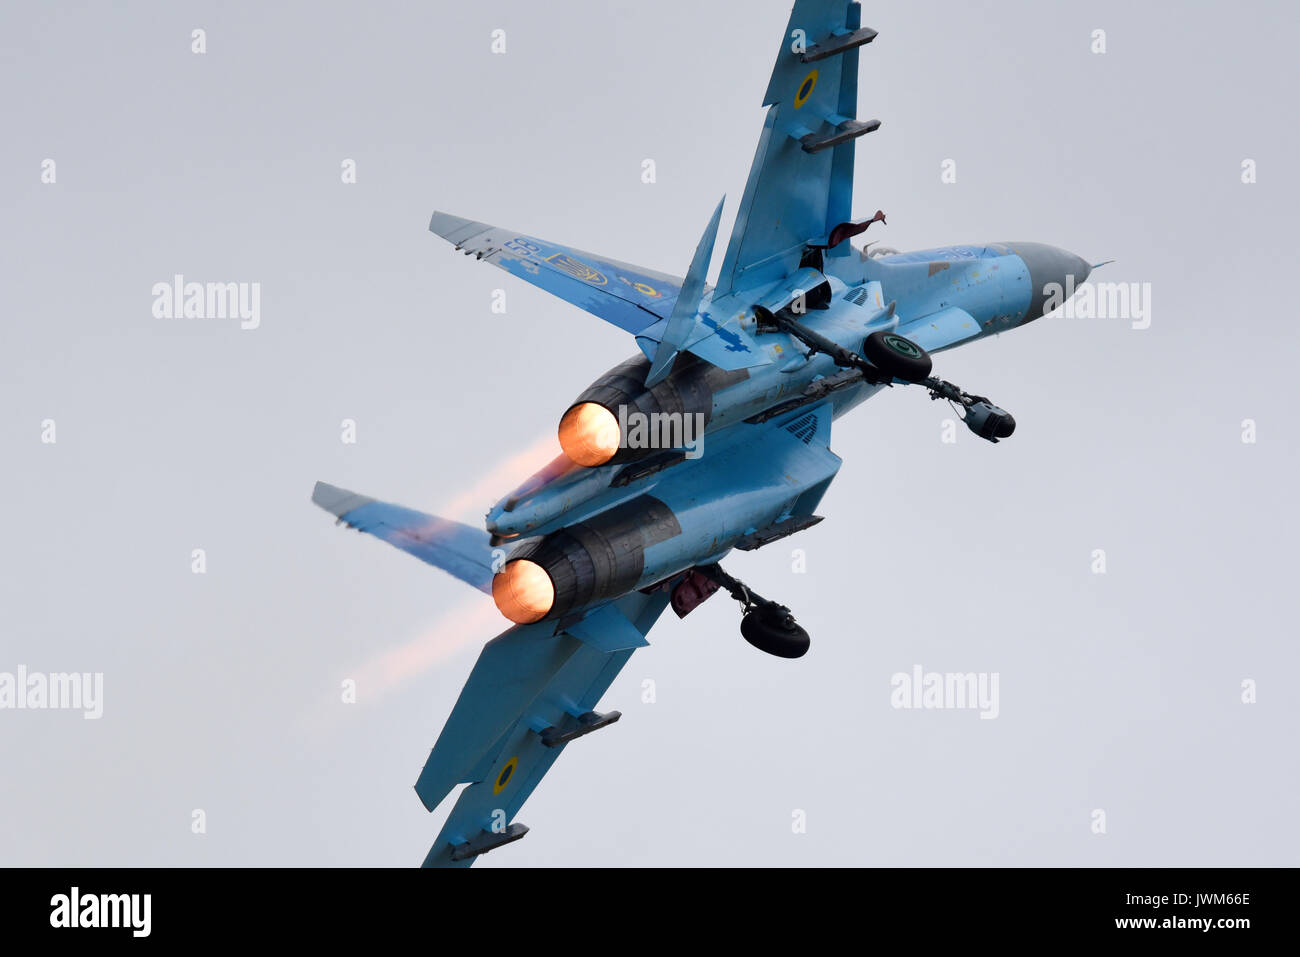 Ukrainian Air Force Sukhoi Su-27 Flanker fighter displaying at an airshow. From 831st Tactical Aviation Brigade, based at Myrhorod in central Ukraine - Stock Image